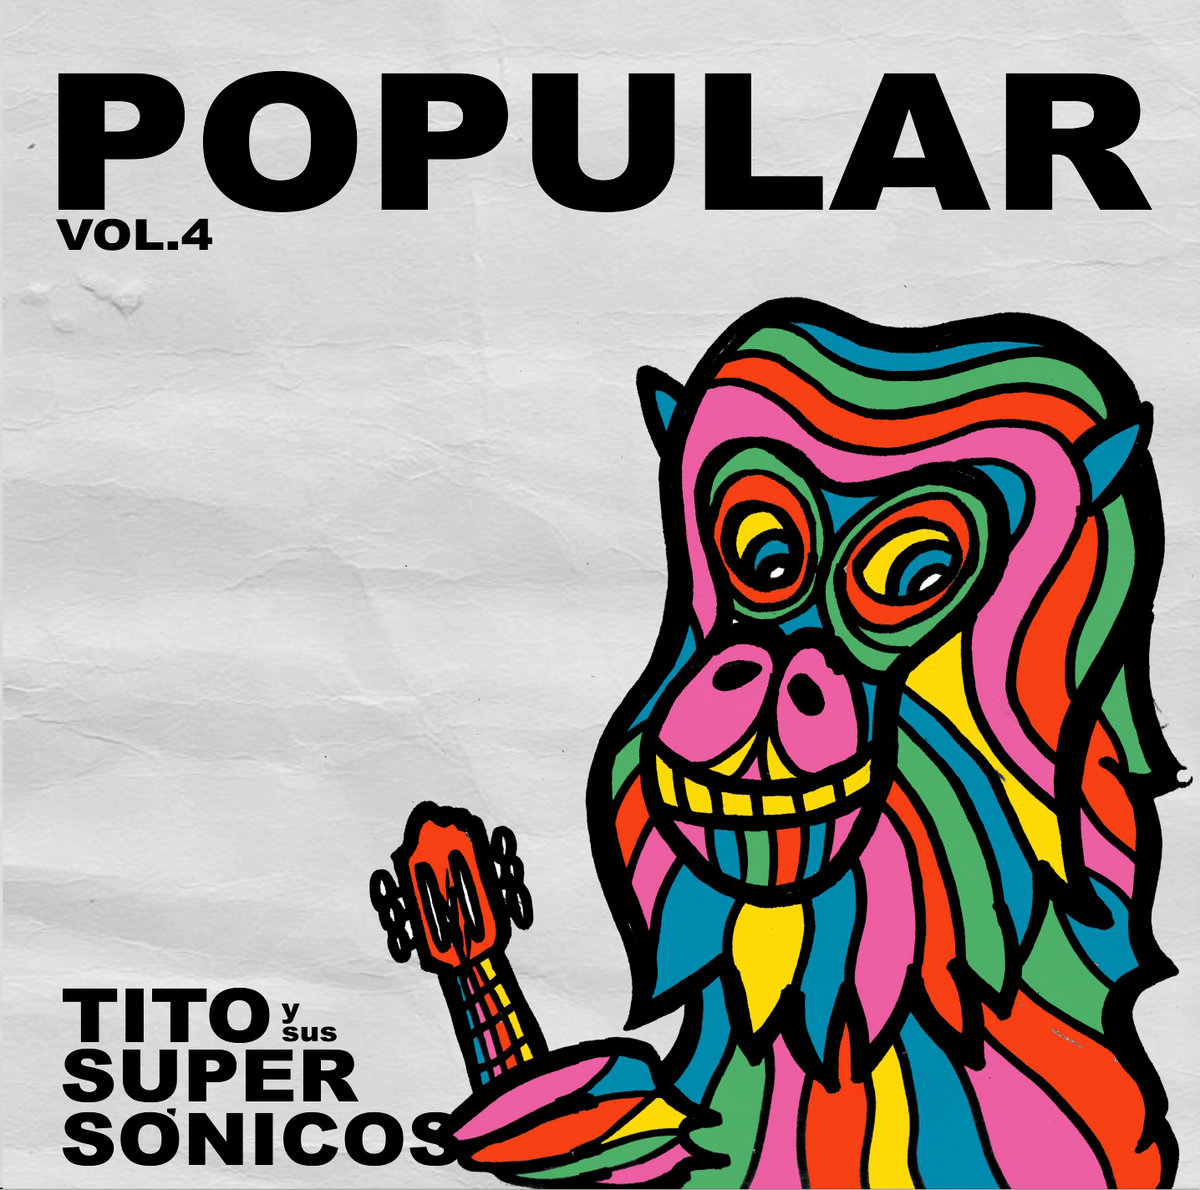 Tito y sus Supersonicos - Popular vol 1-4